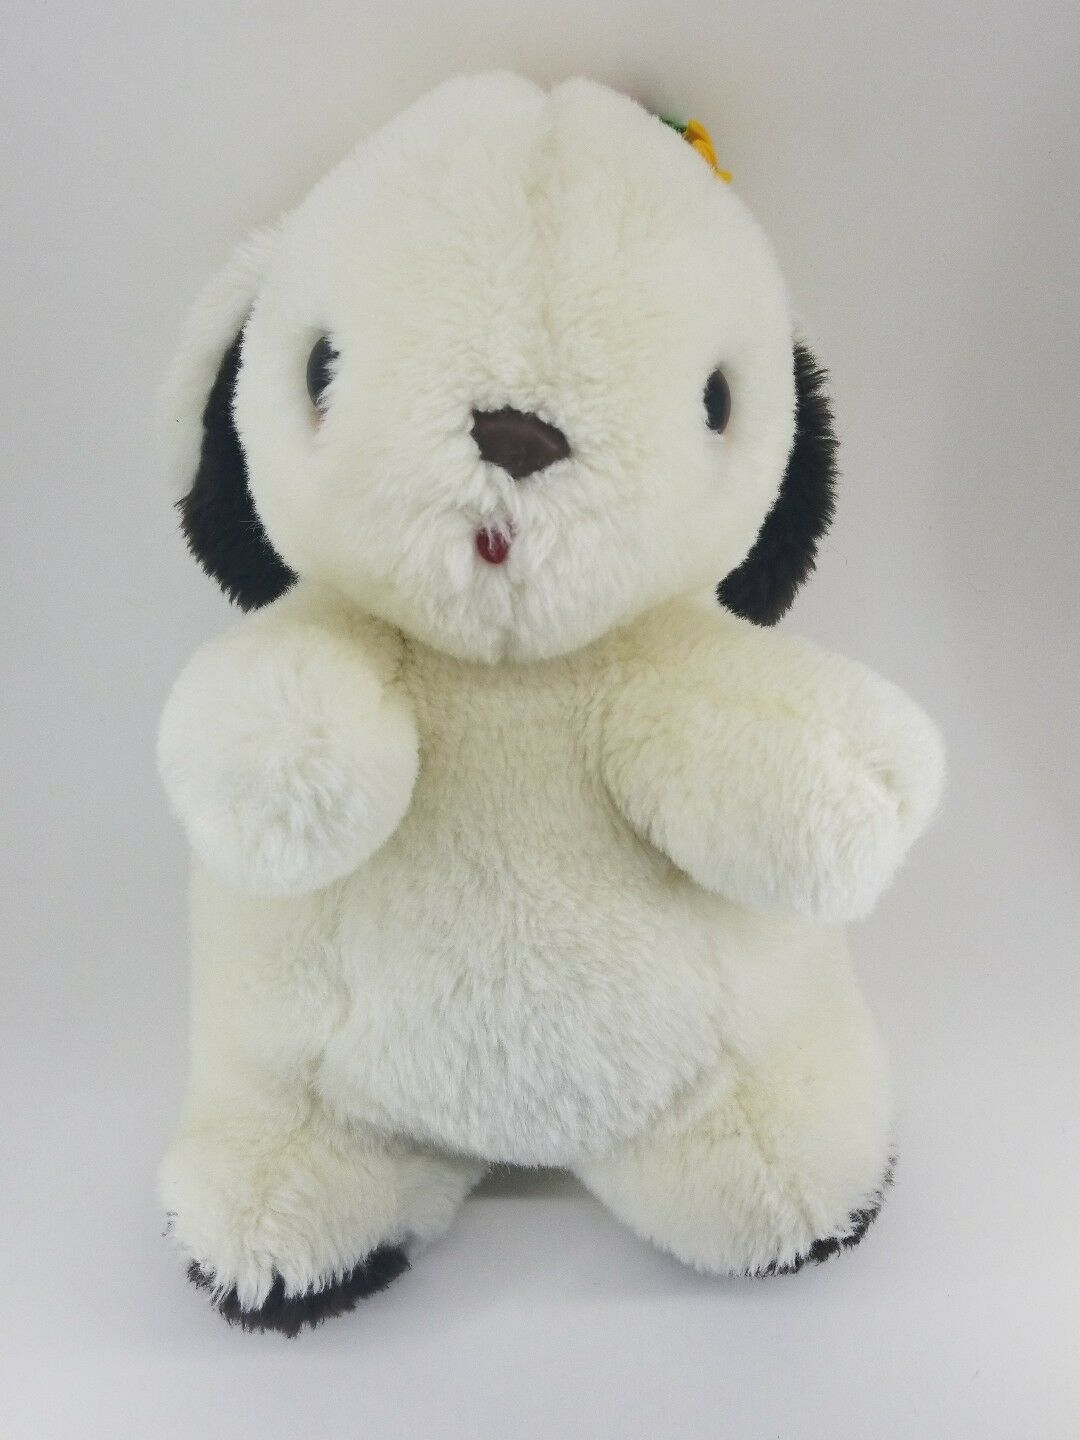 GUND VINTAGE 1976 LUV ME EASTER BUNNY RABBIT RATTLE STUFFED ANIMAL PLUSH TOY